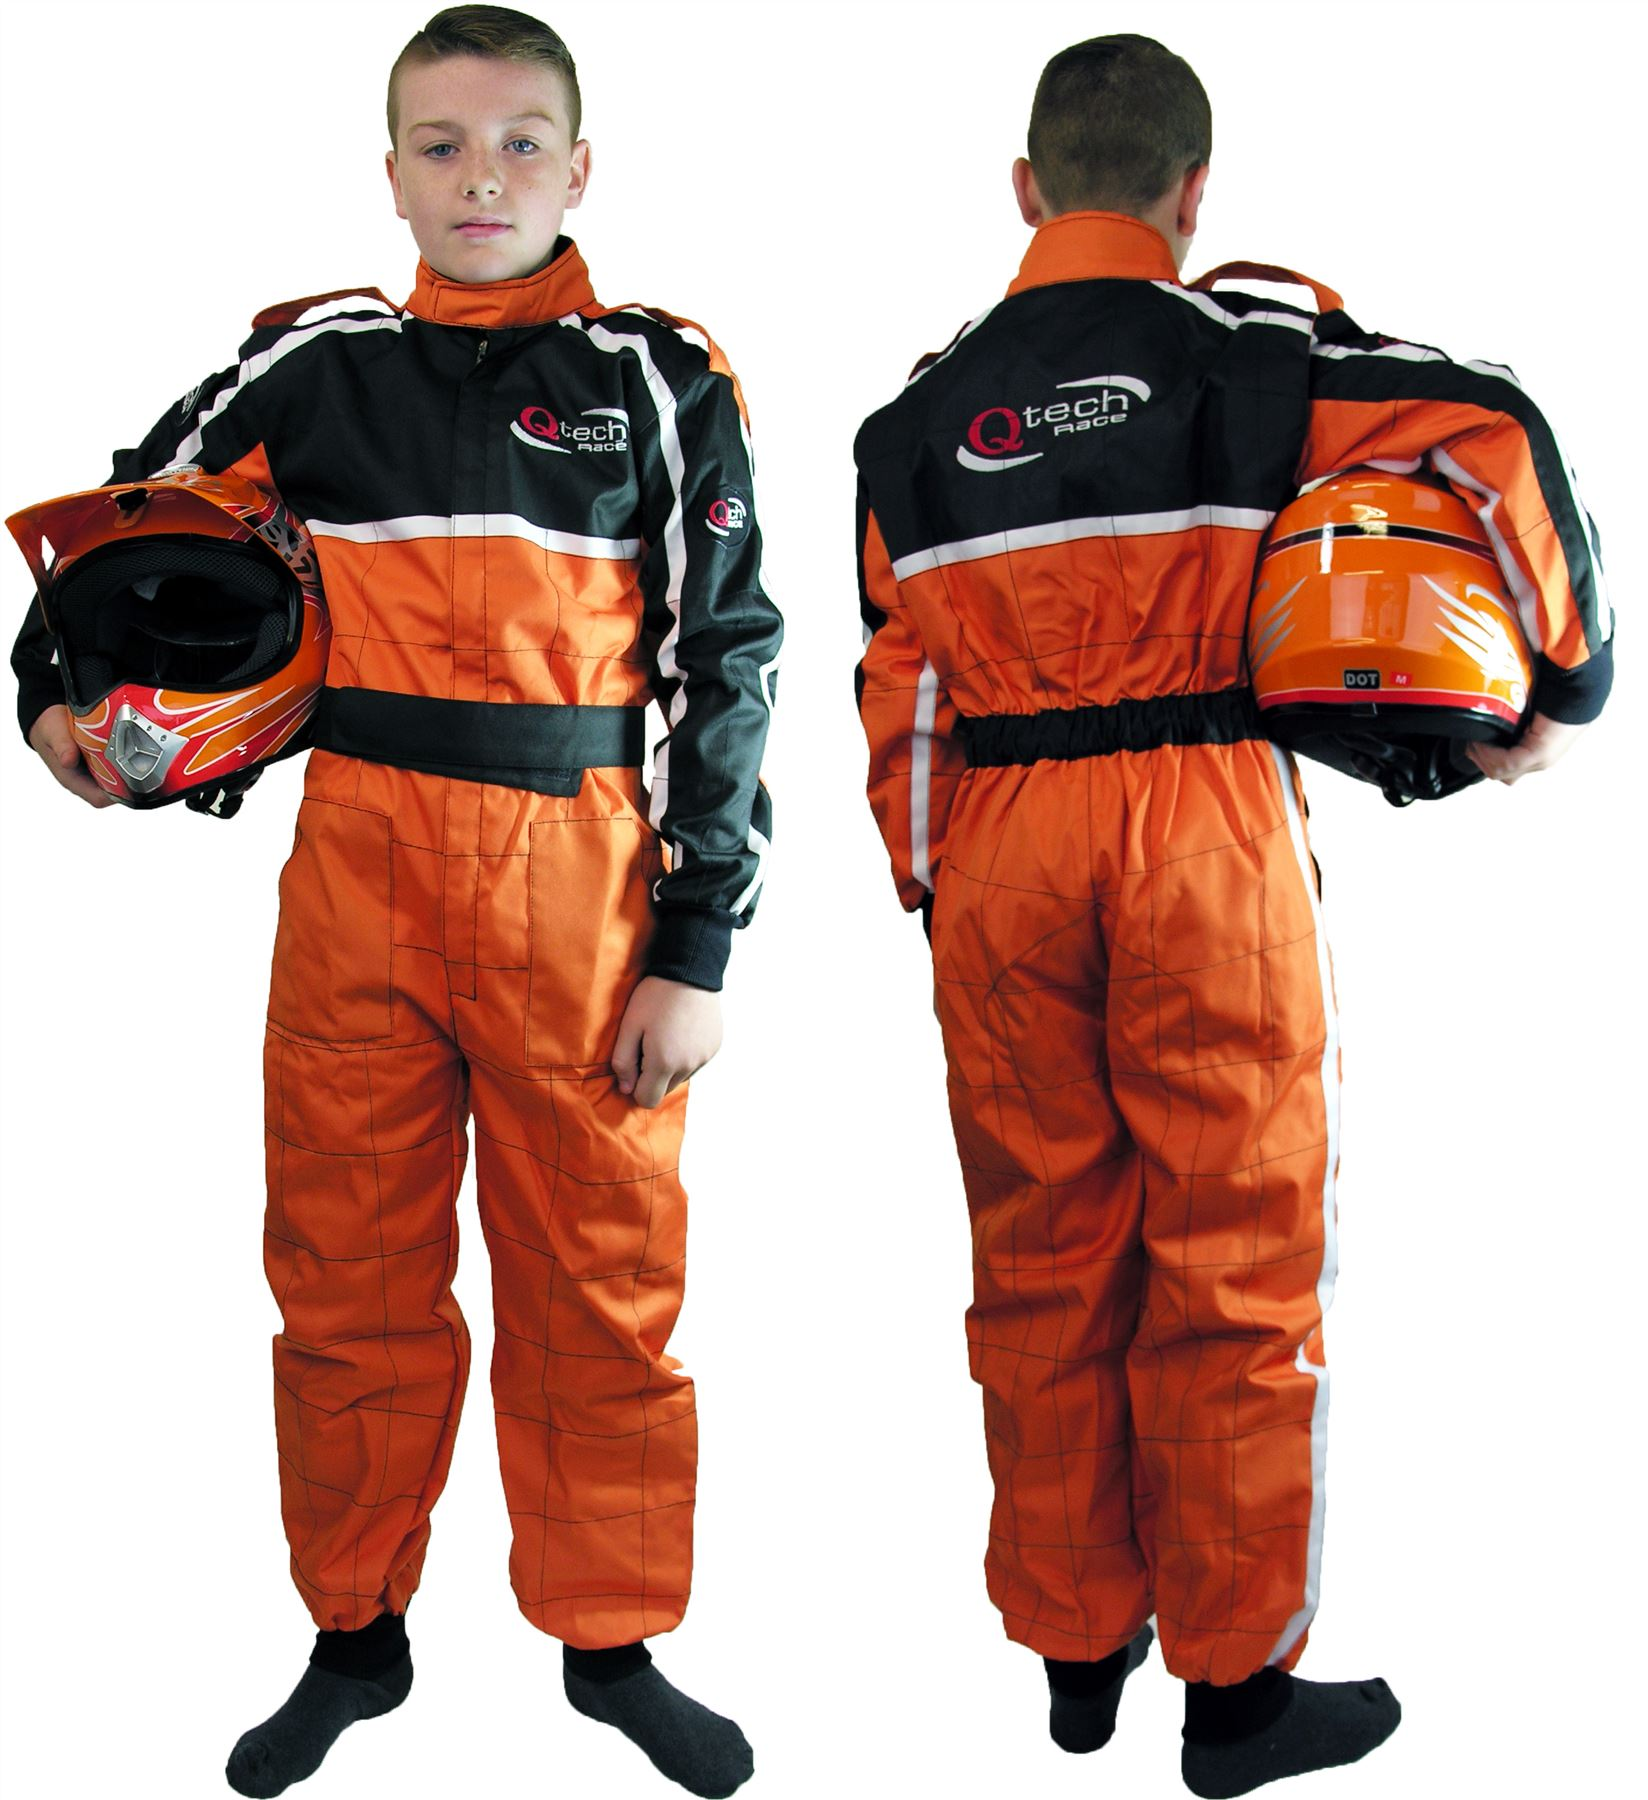 qtech combinaison int grale de moto cross karting moto enfant ebay. Black Bedroom Furniture Sets. Home Design Ideas